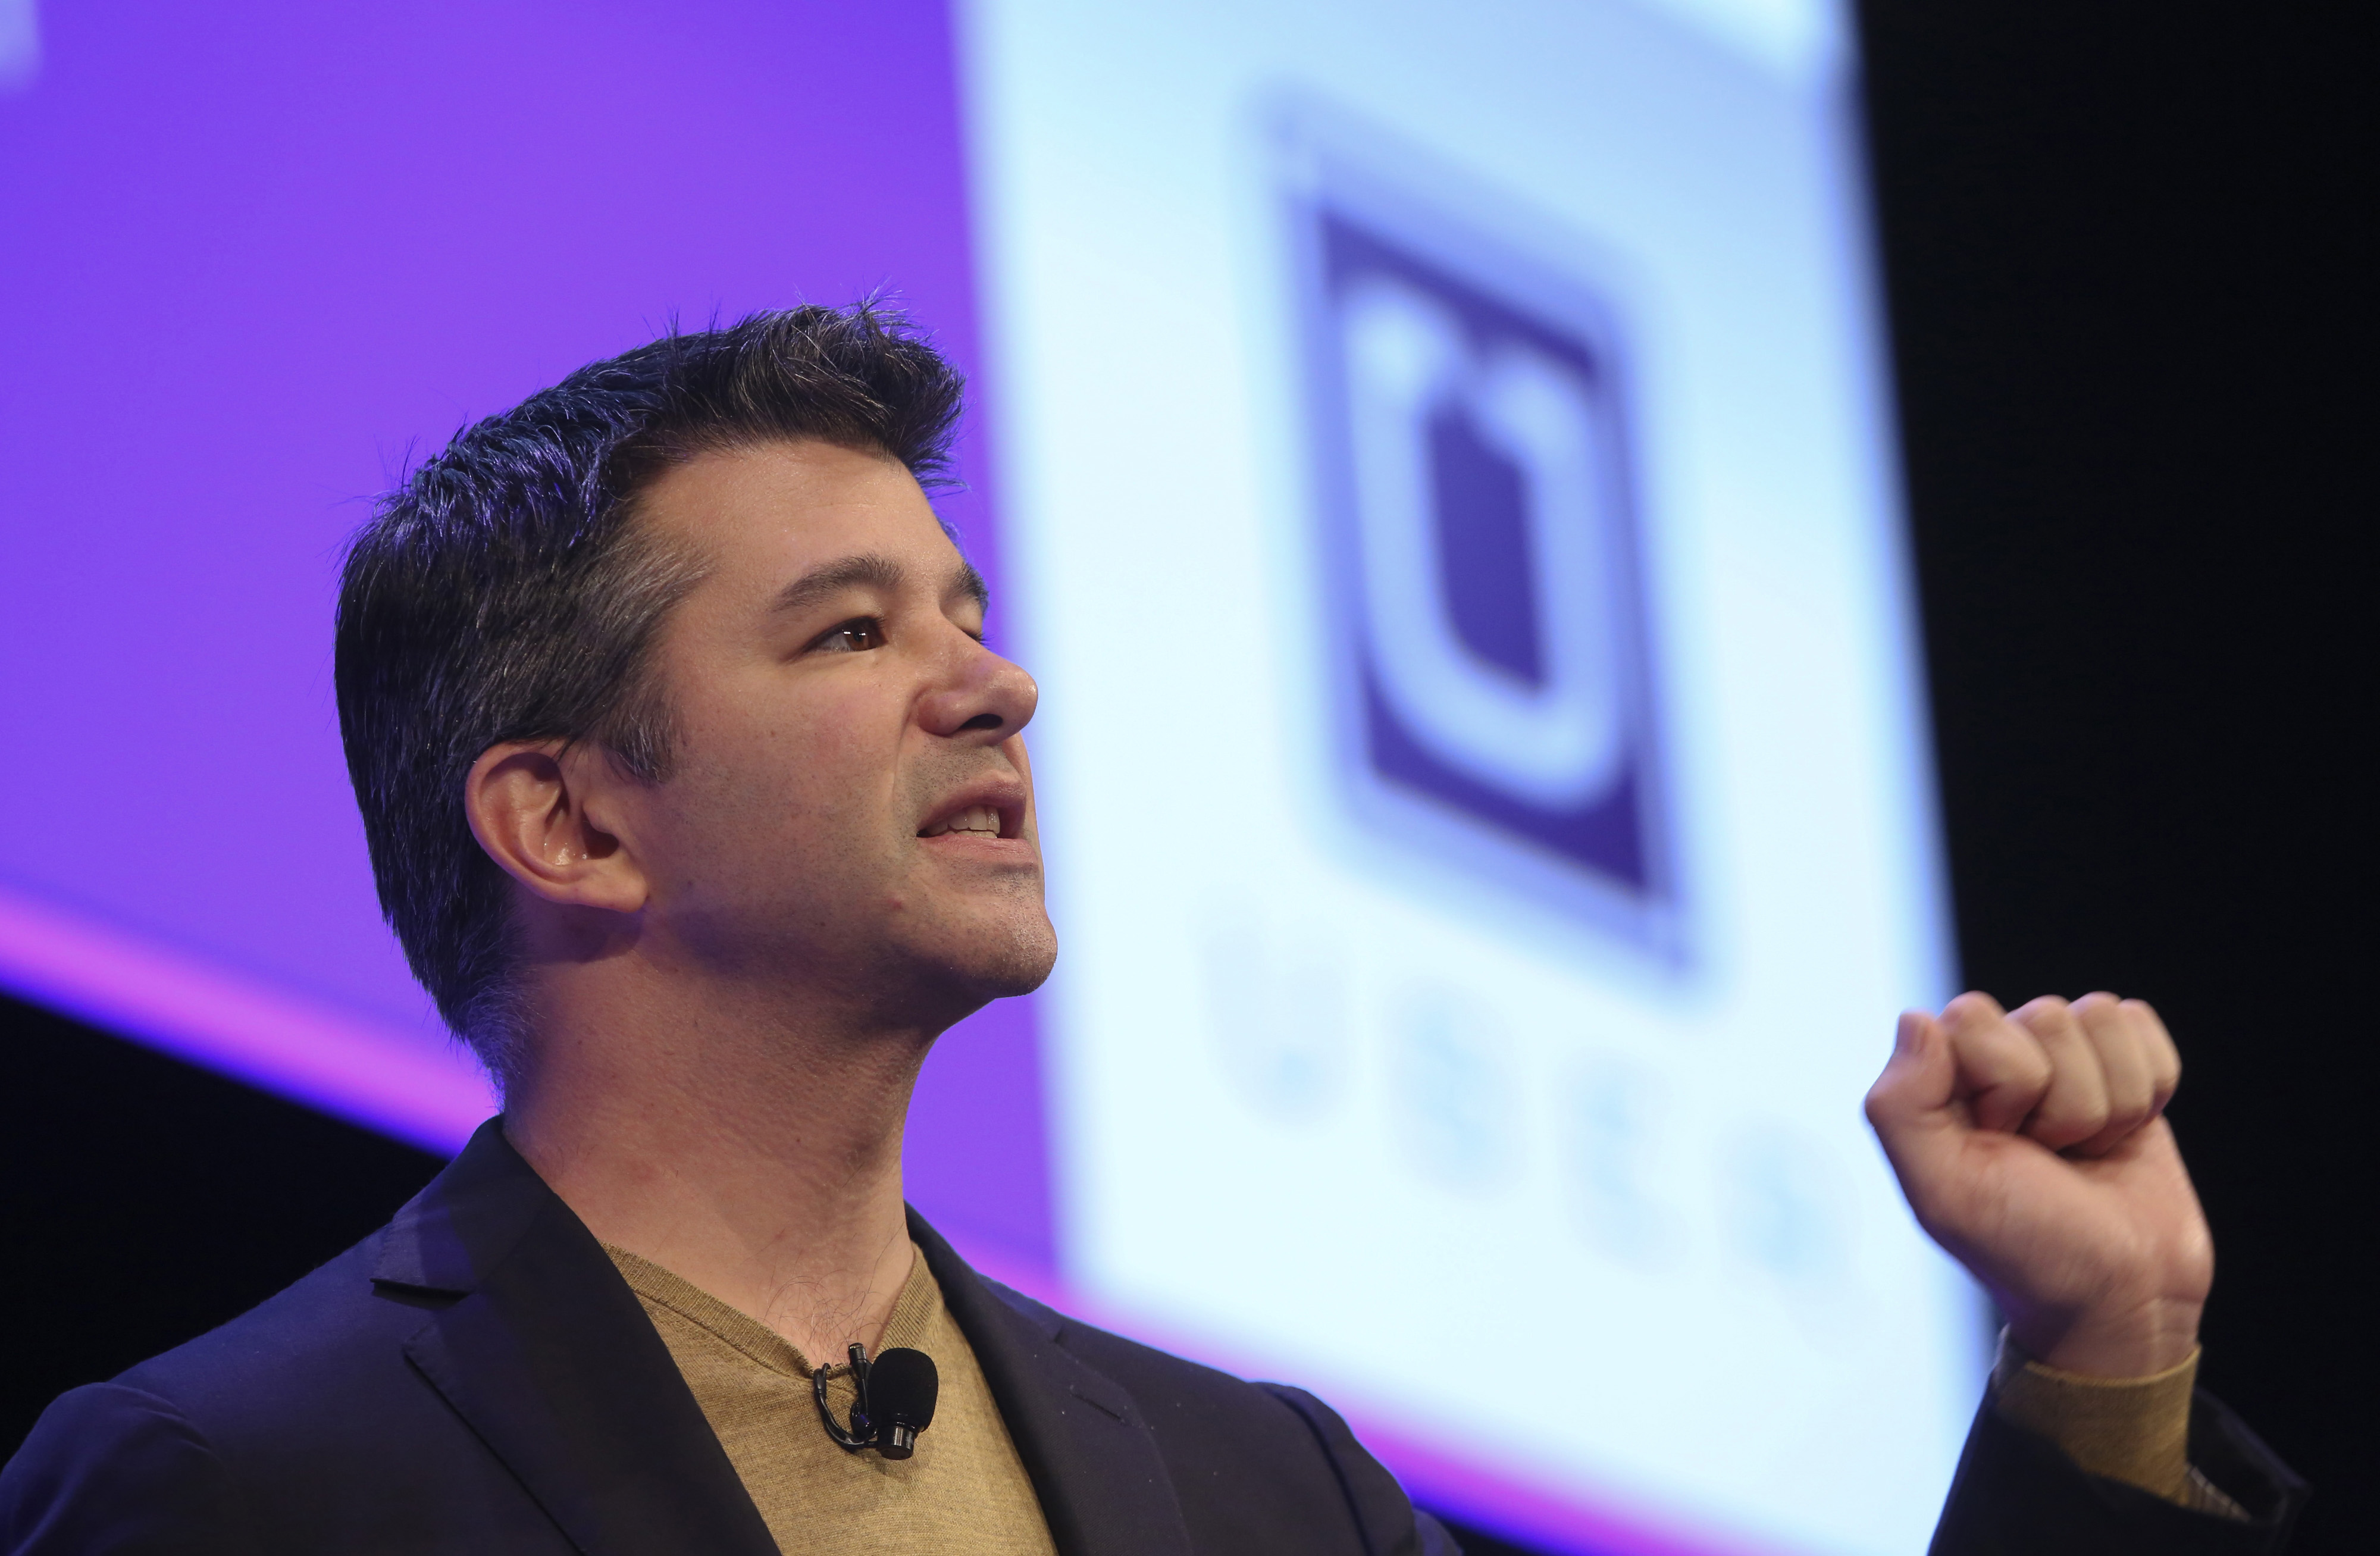 Travis Kalanick, Uber's CEO, is a focus of protesters' anger.